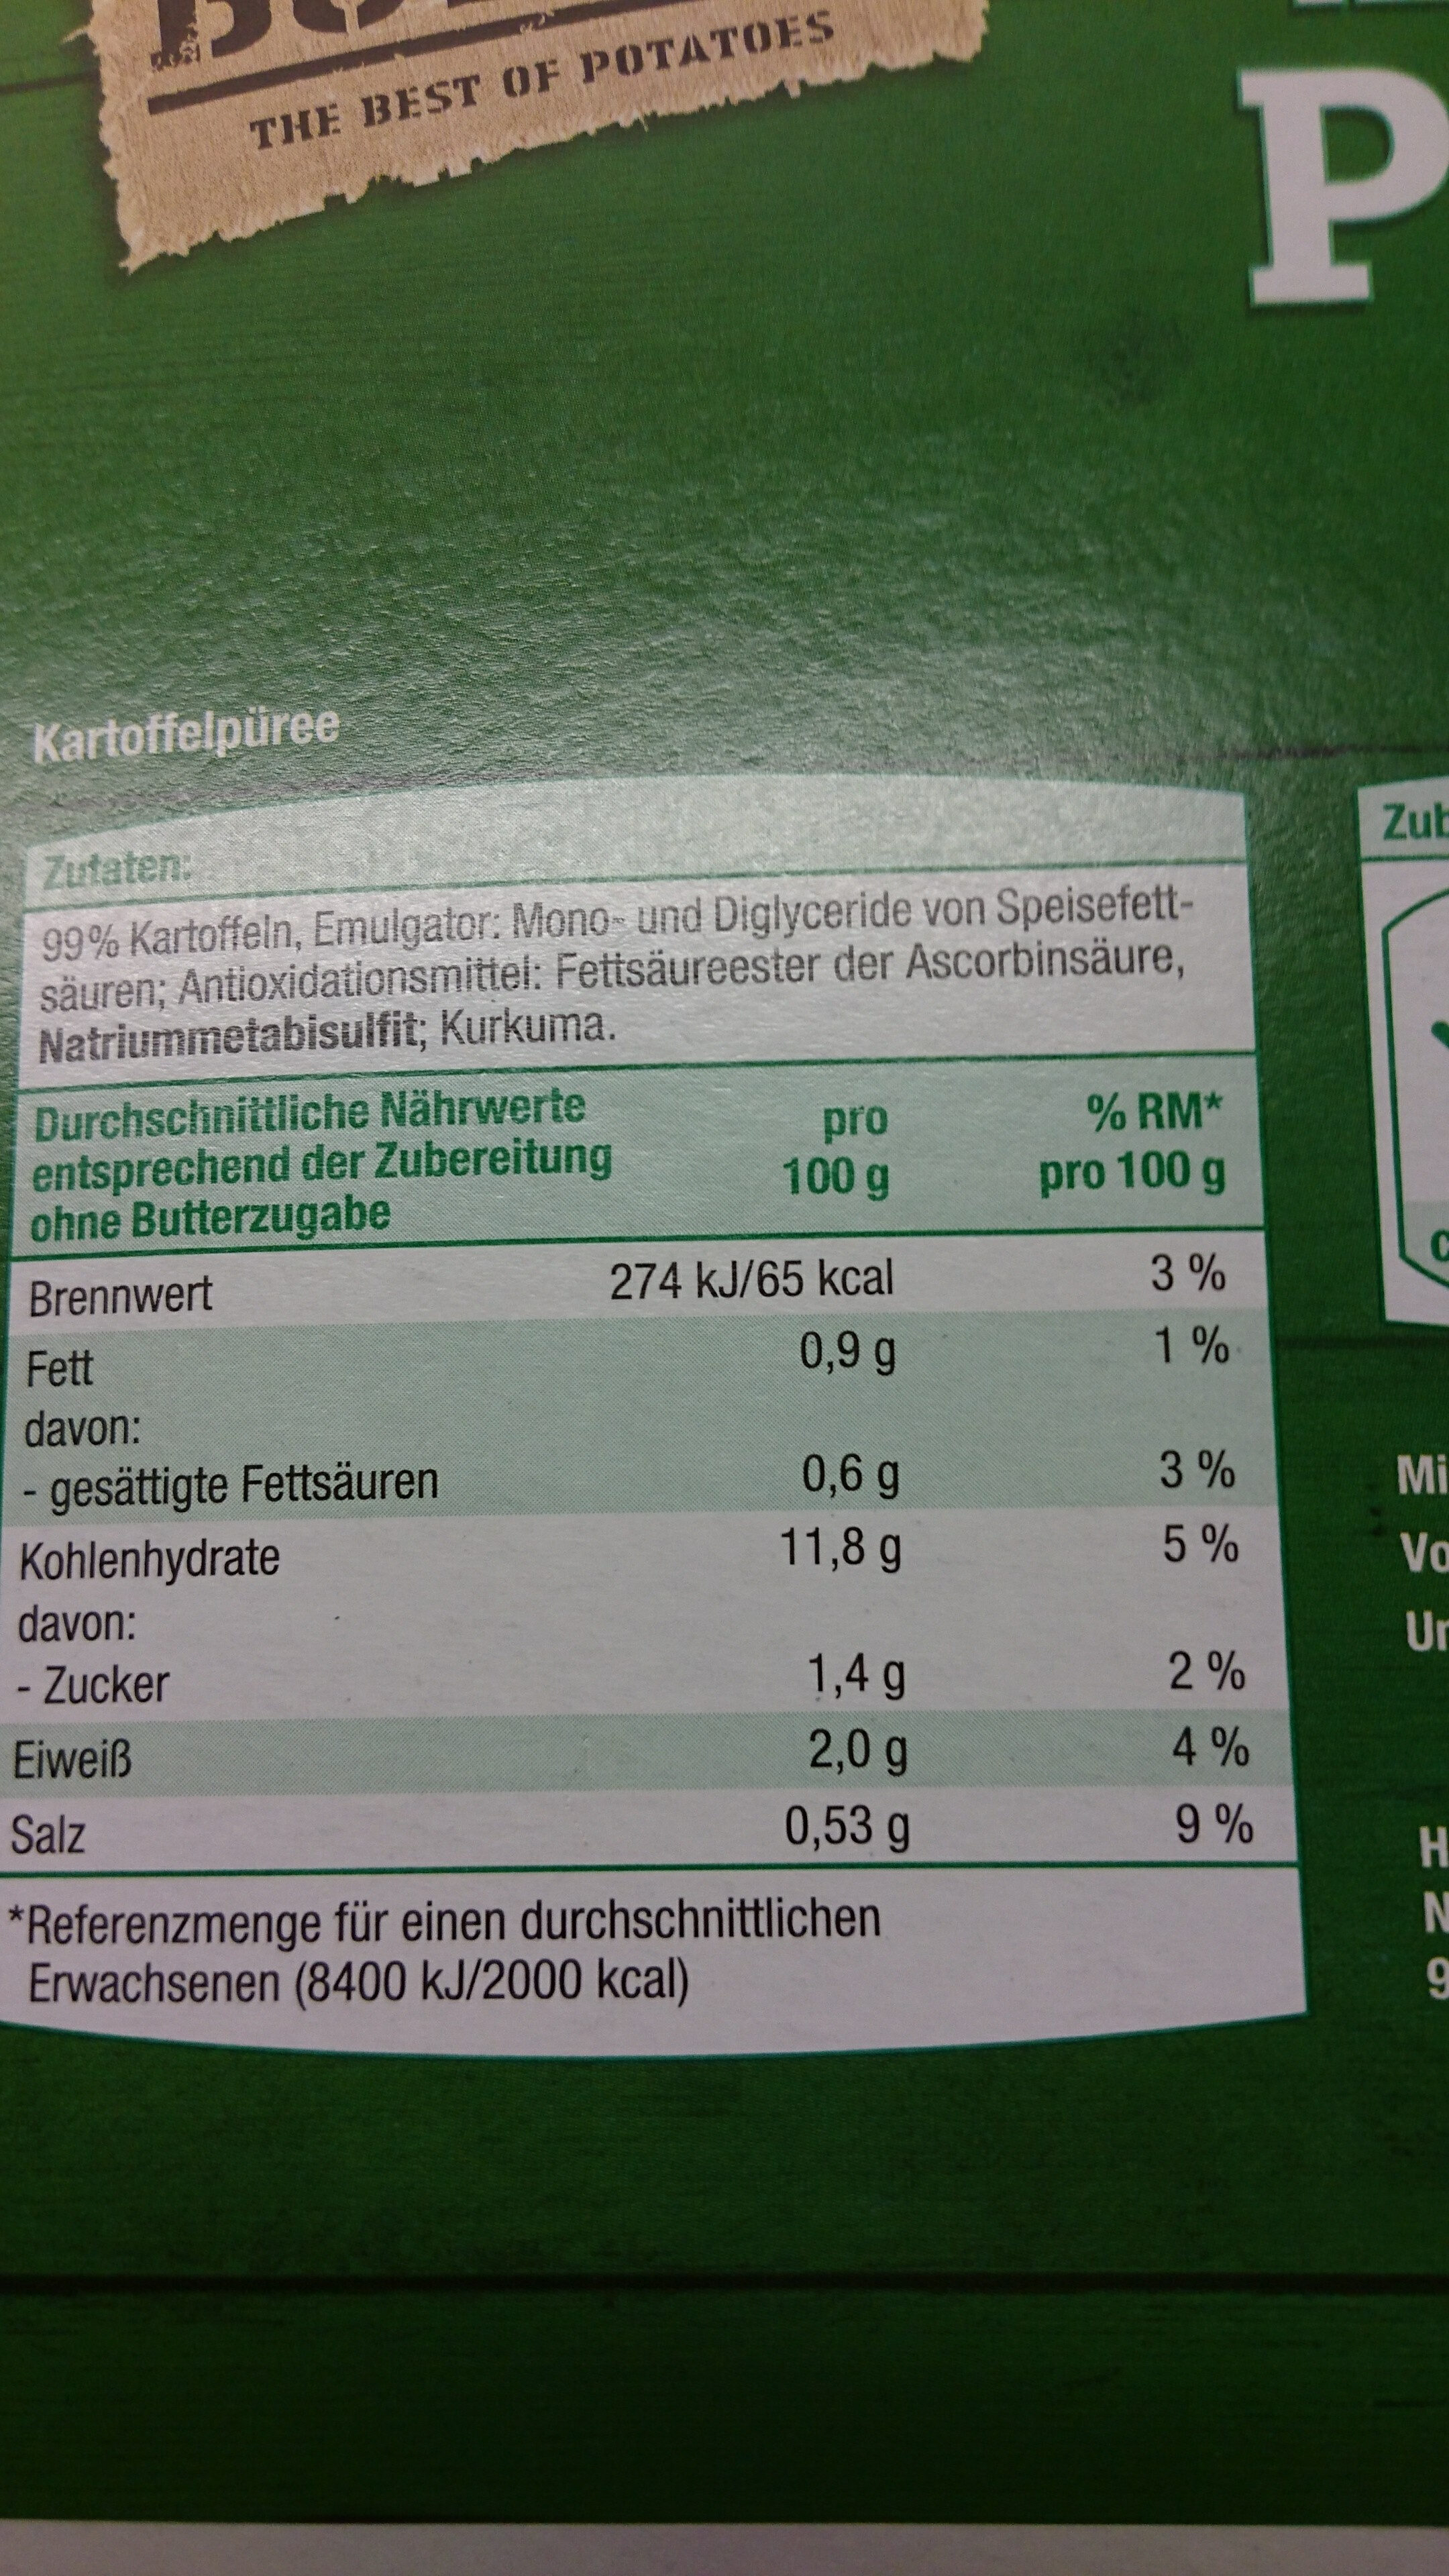 Kartoffelpüree - Ingredients